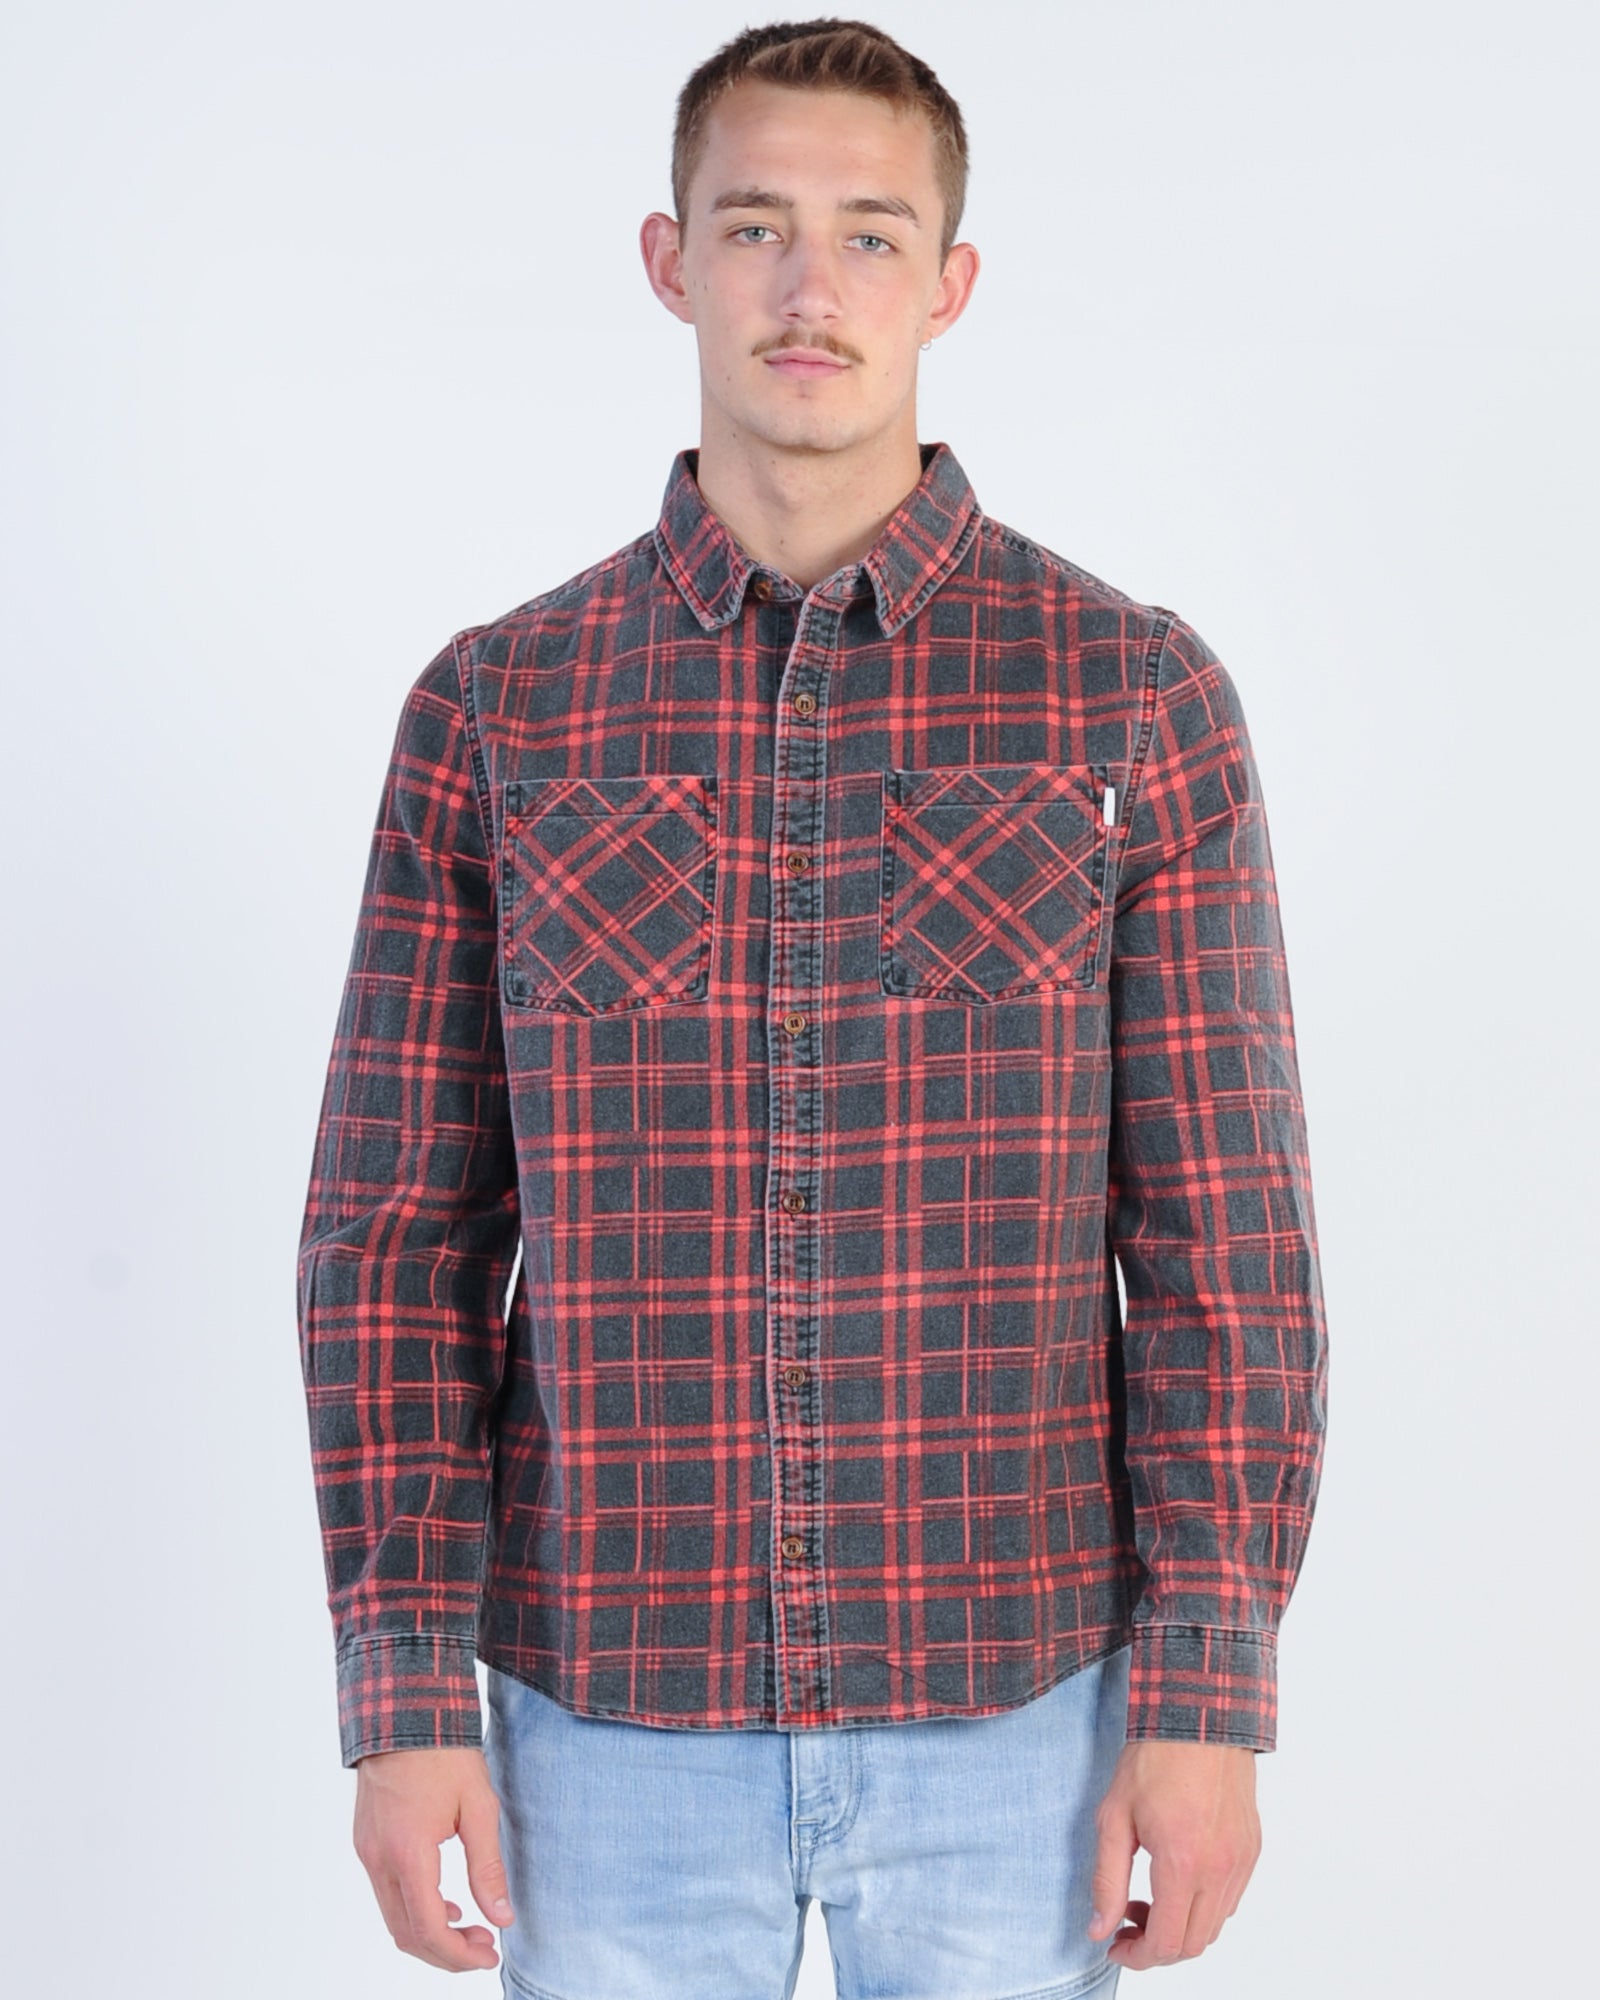 Nena & Pasadena Charge L/S Check Shirt - Red/Black Check